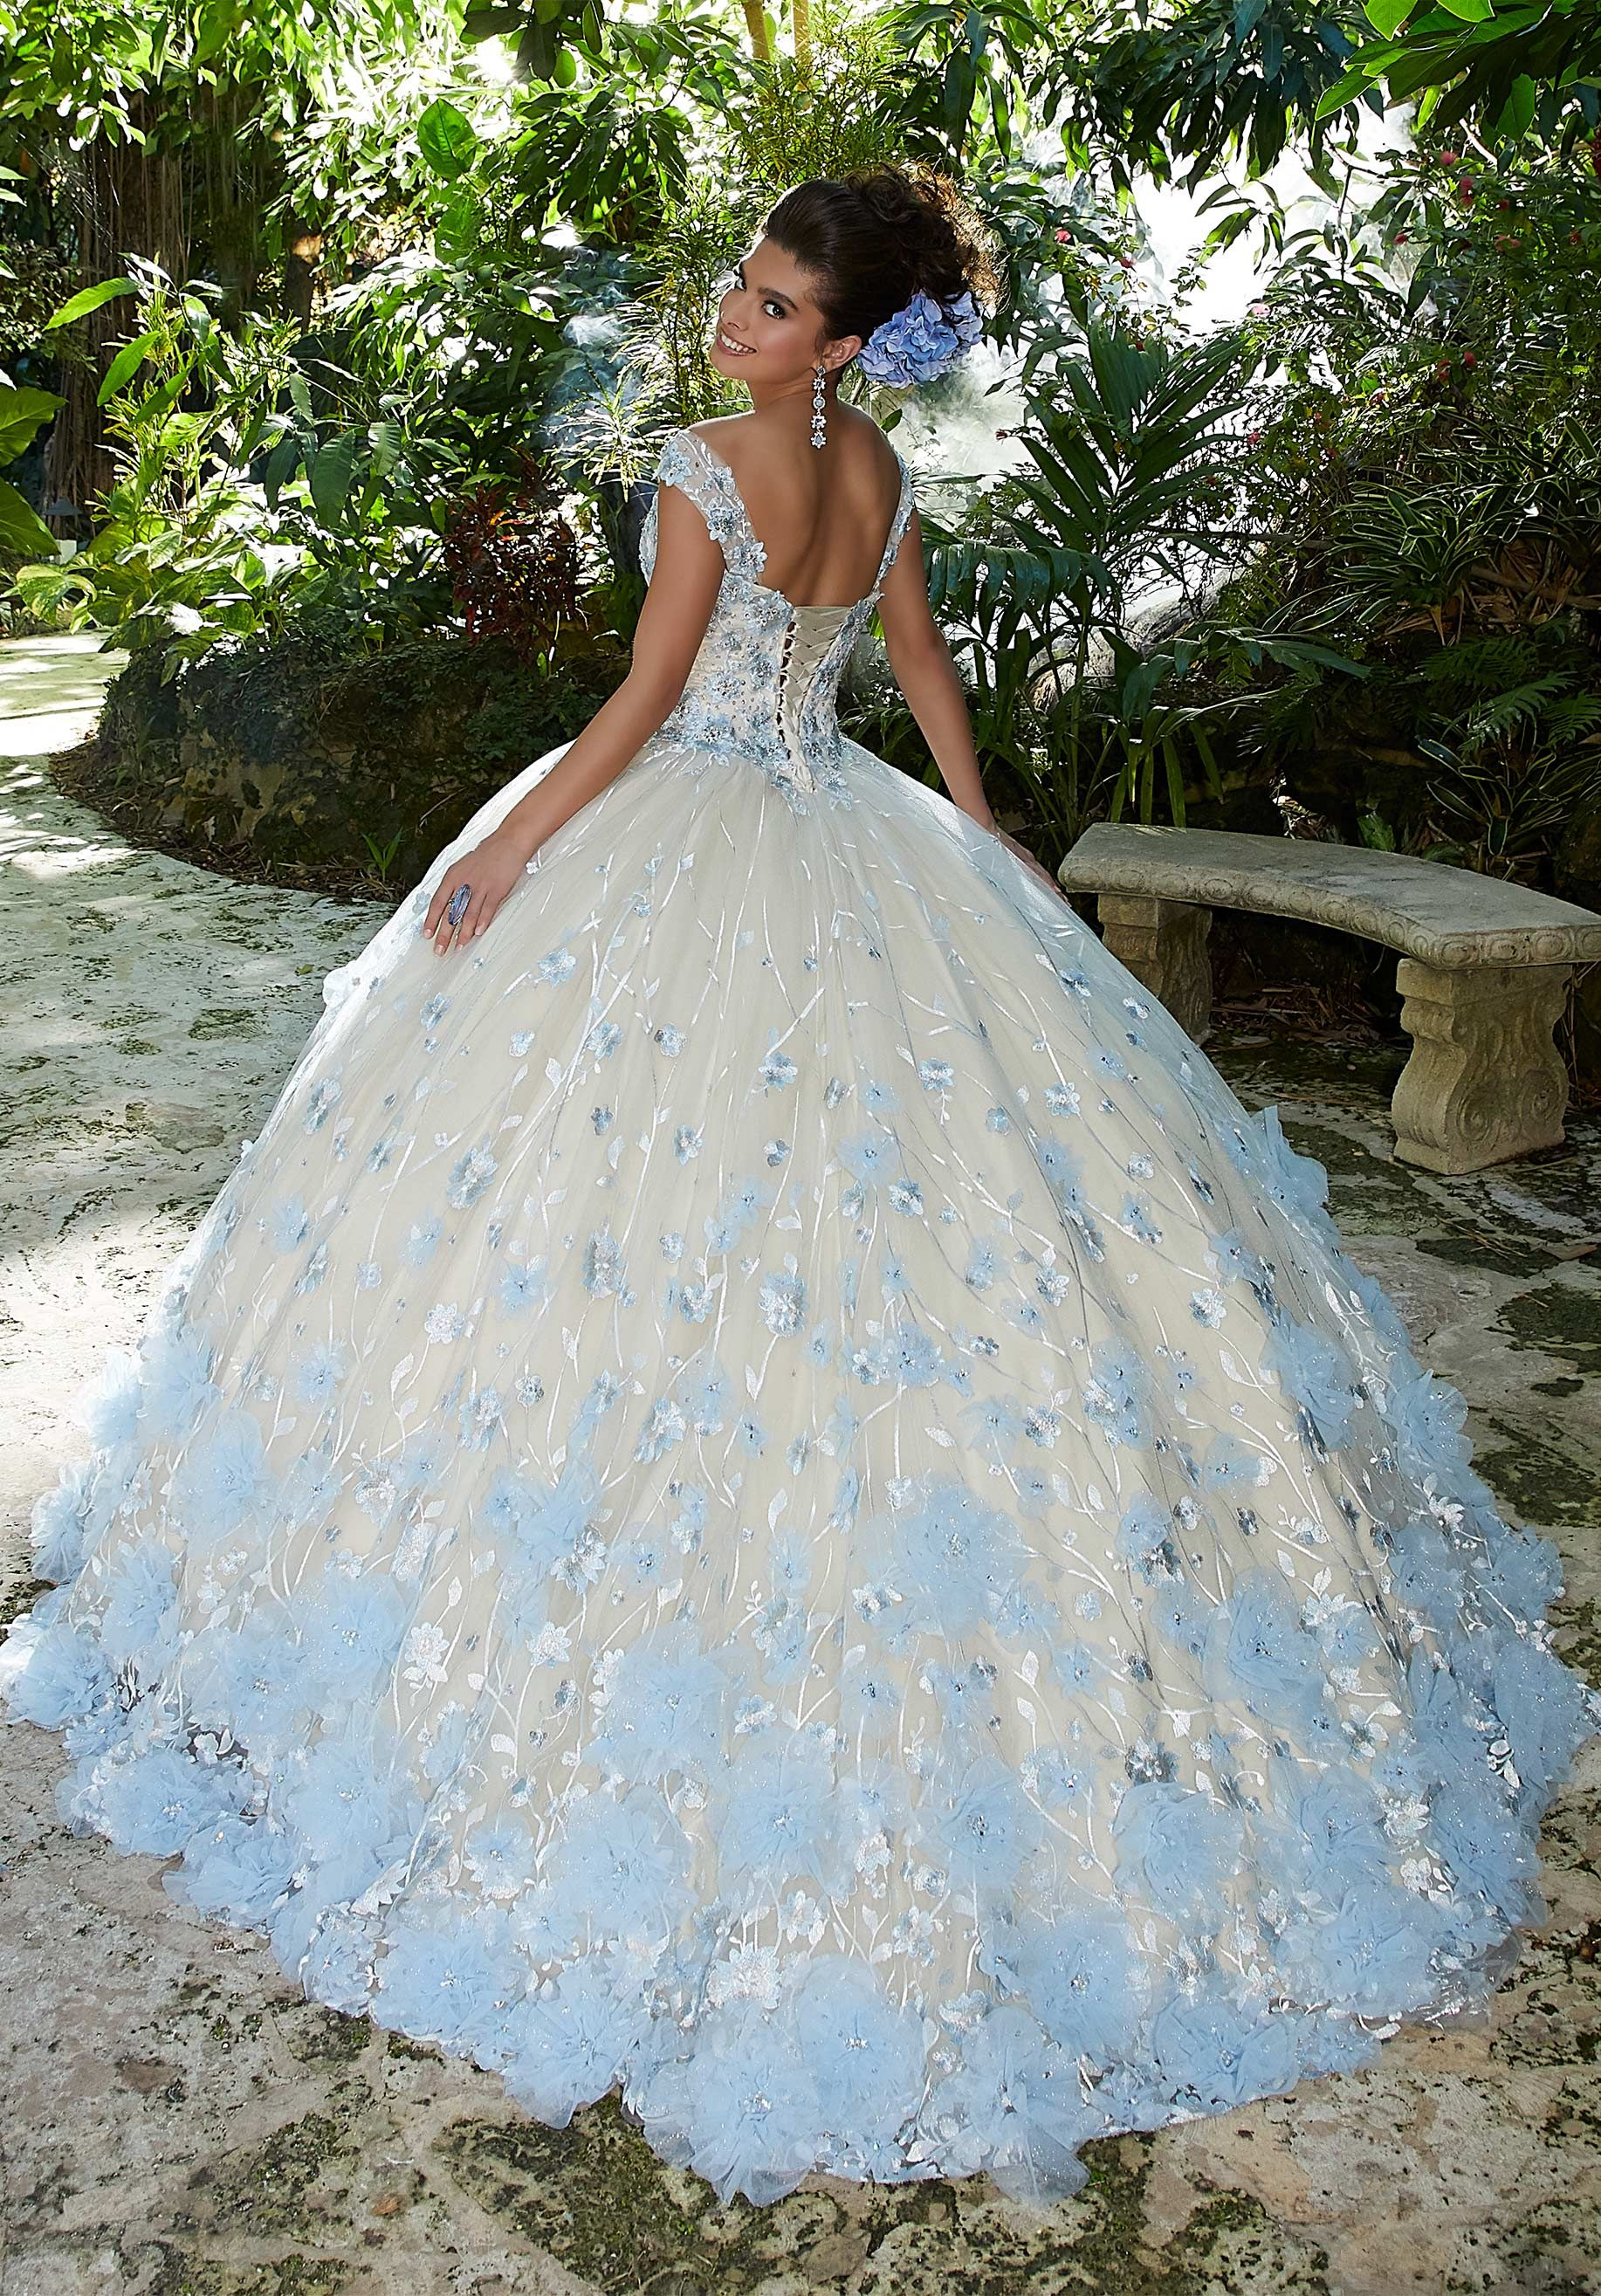 Light Blue Floral Quinceanera Dress By Morilee Morilee Style 34011 Pretty Quinceanera Dresses Quinceanera Dresses Blue Ball Gowns Wedding [ 2630 x 1834 Pixel ]